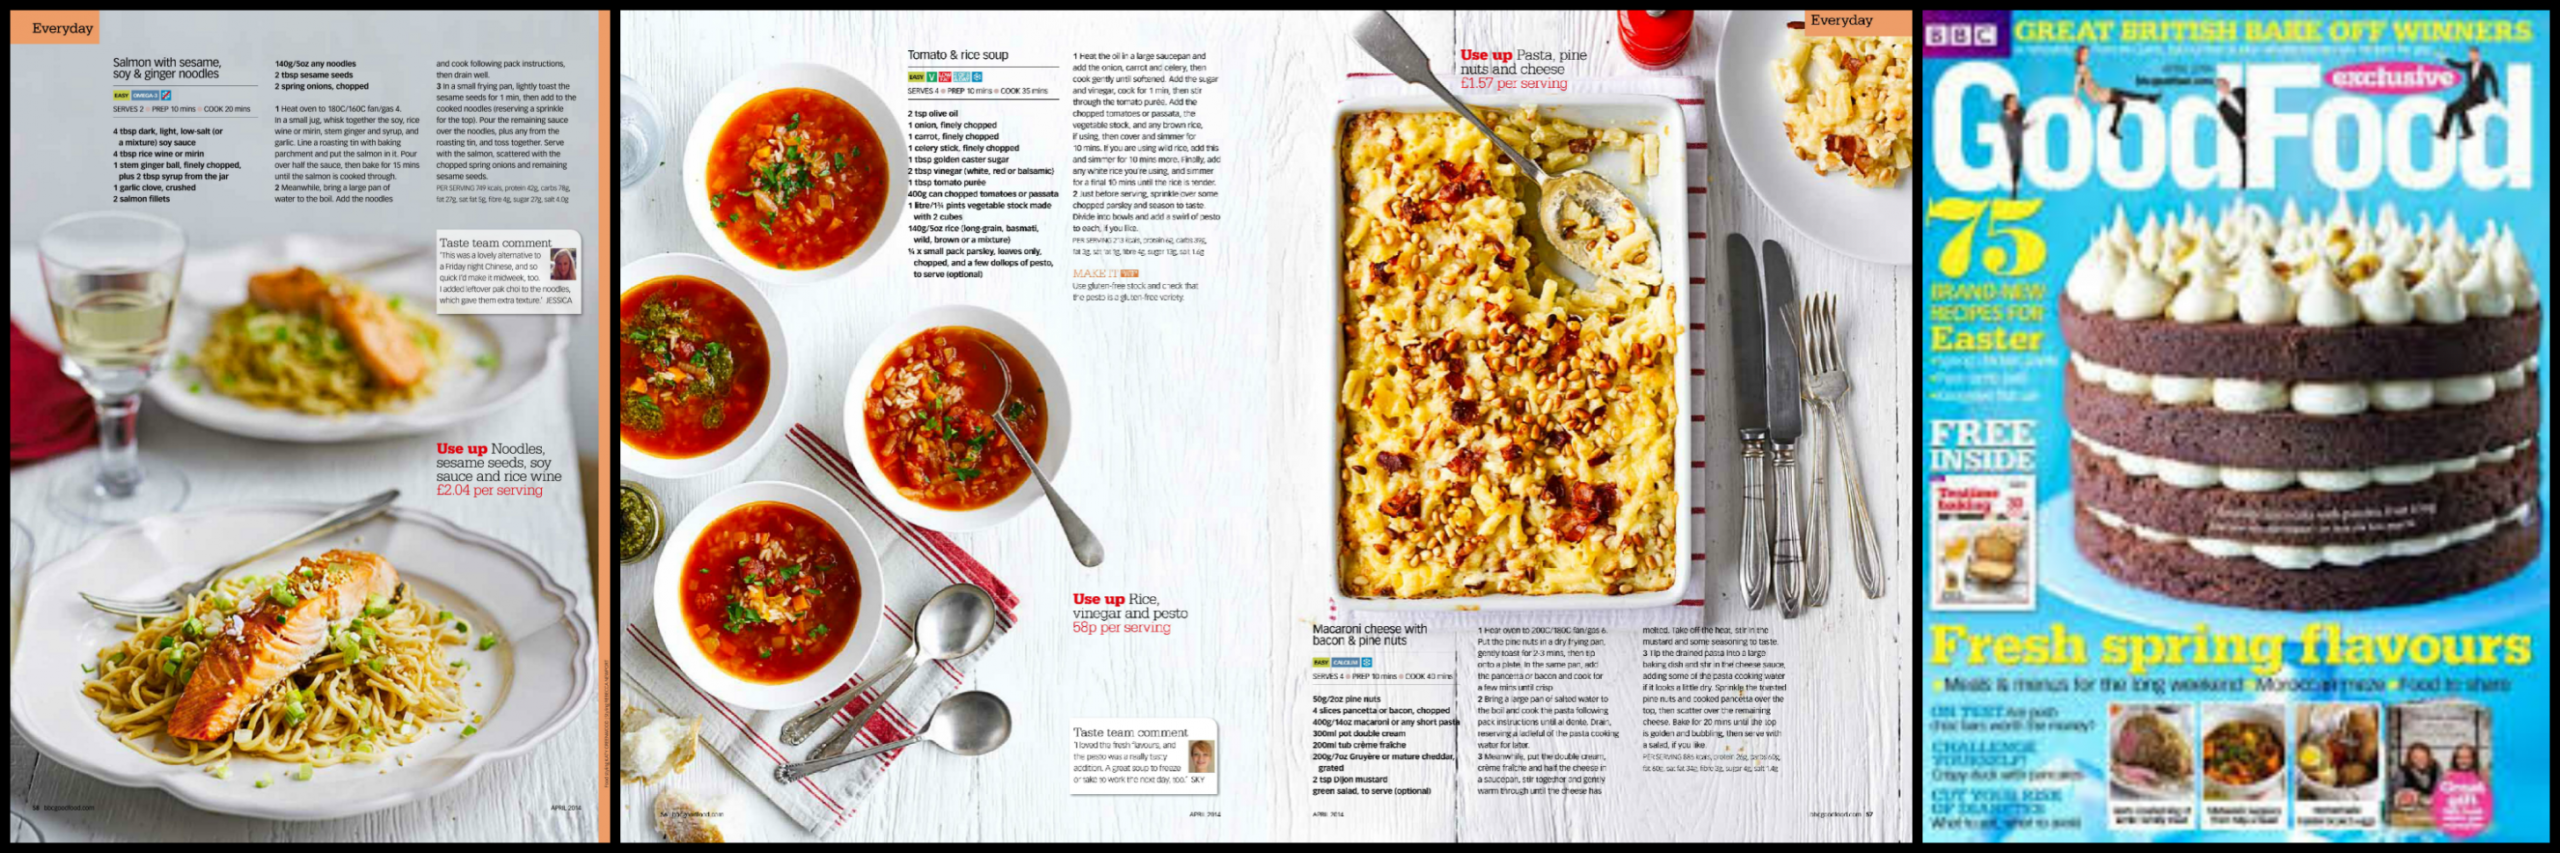 Five Spring Recipes In BBC Good Food Magazine - Ren Behan ..